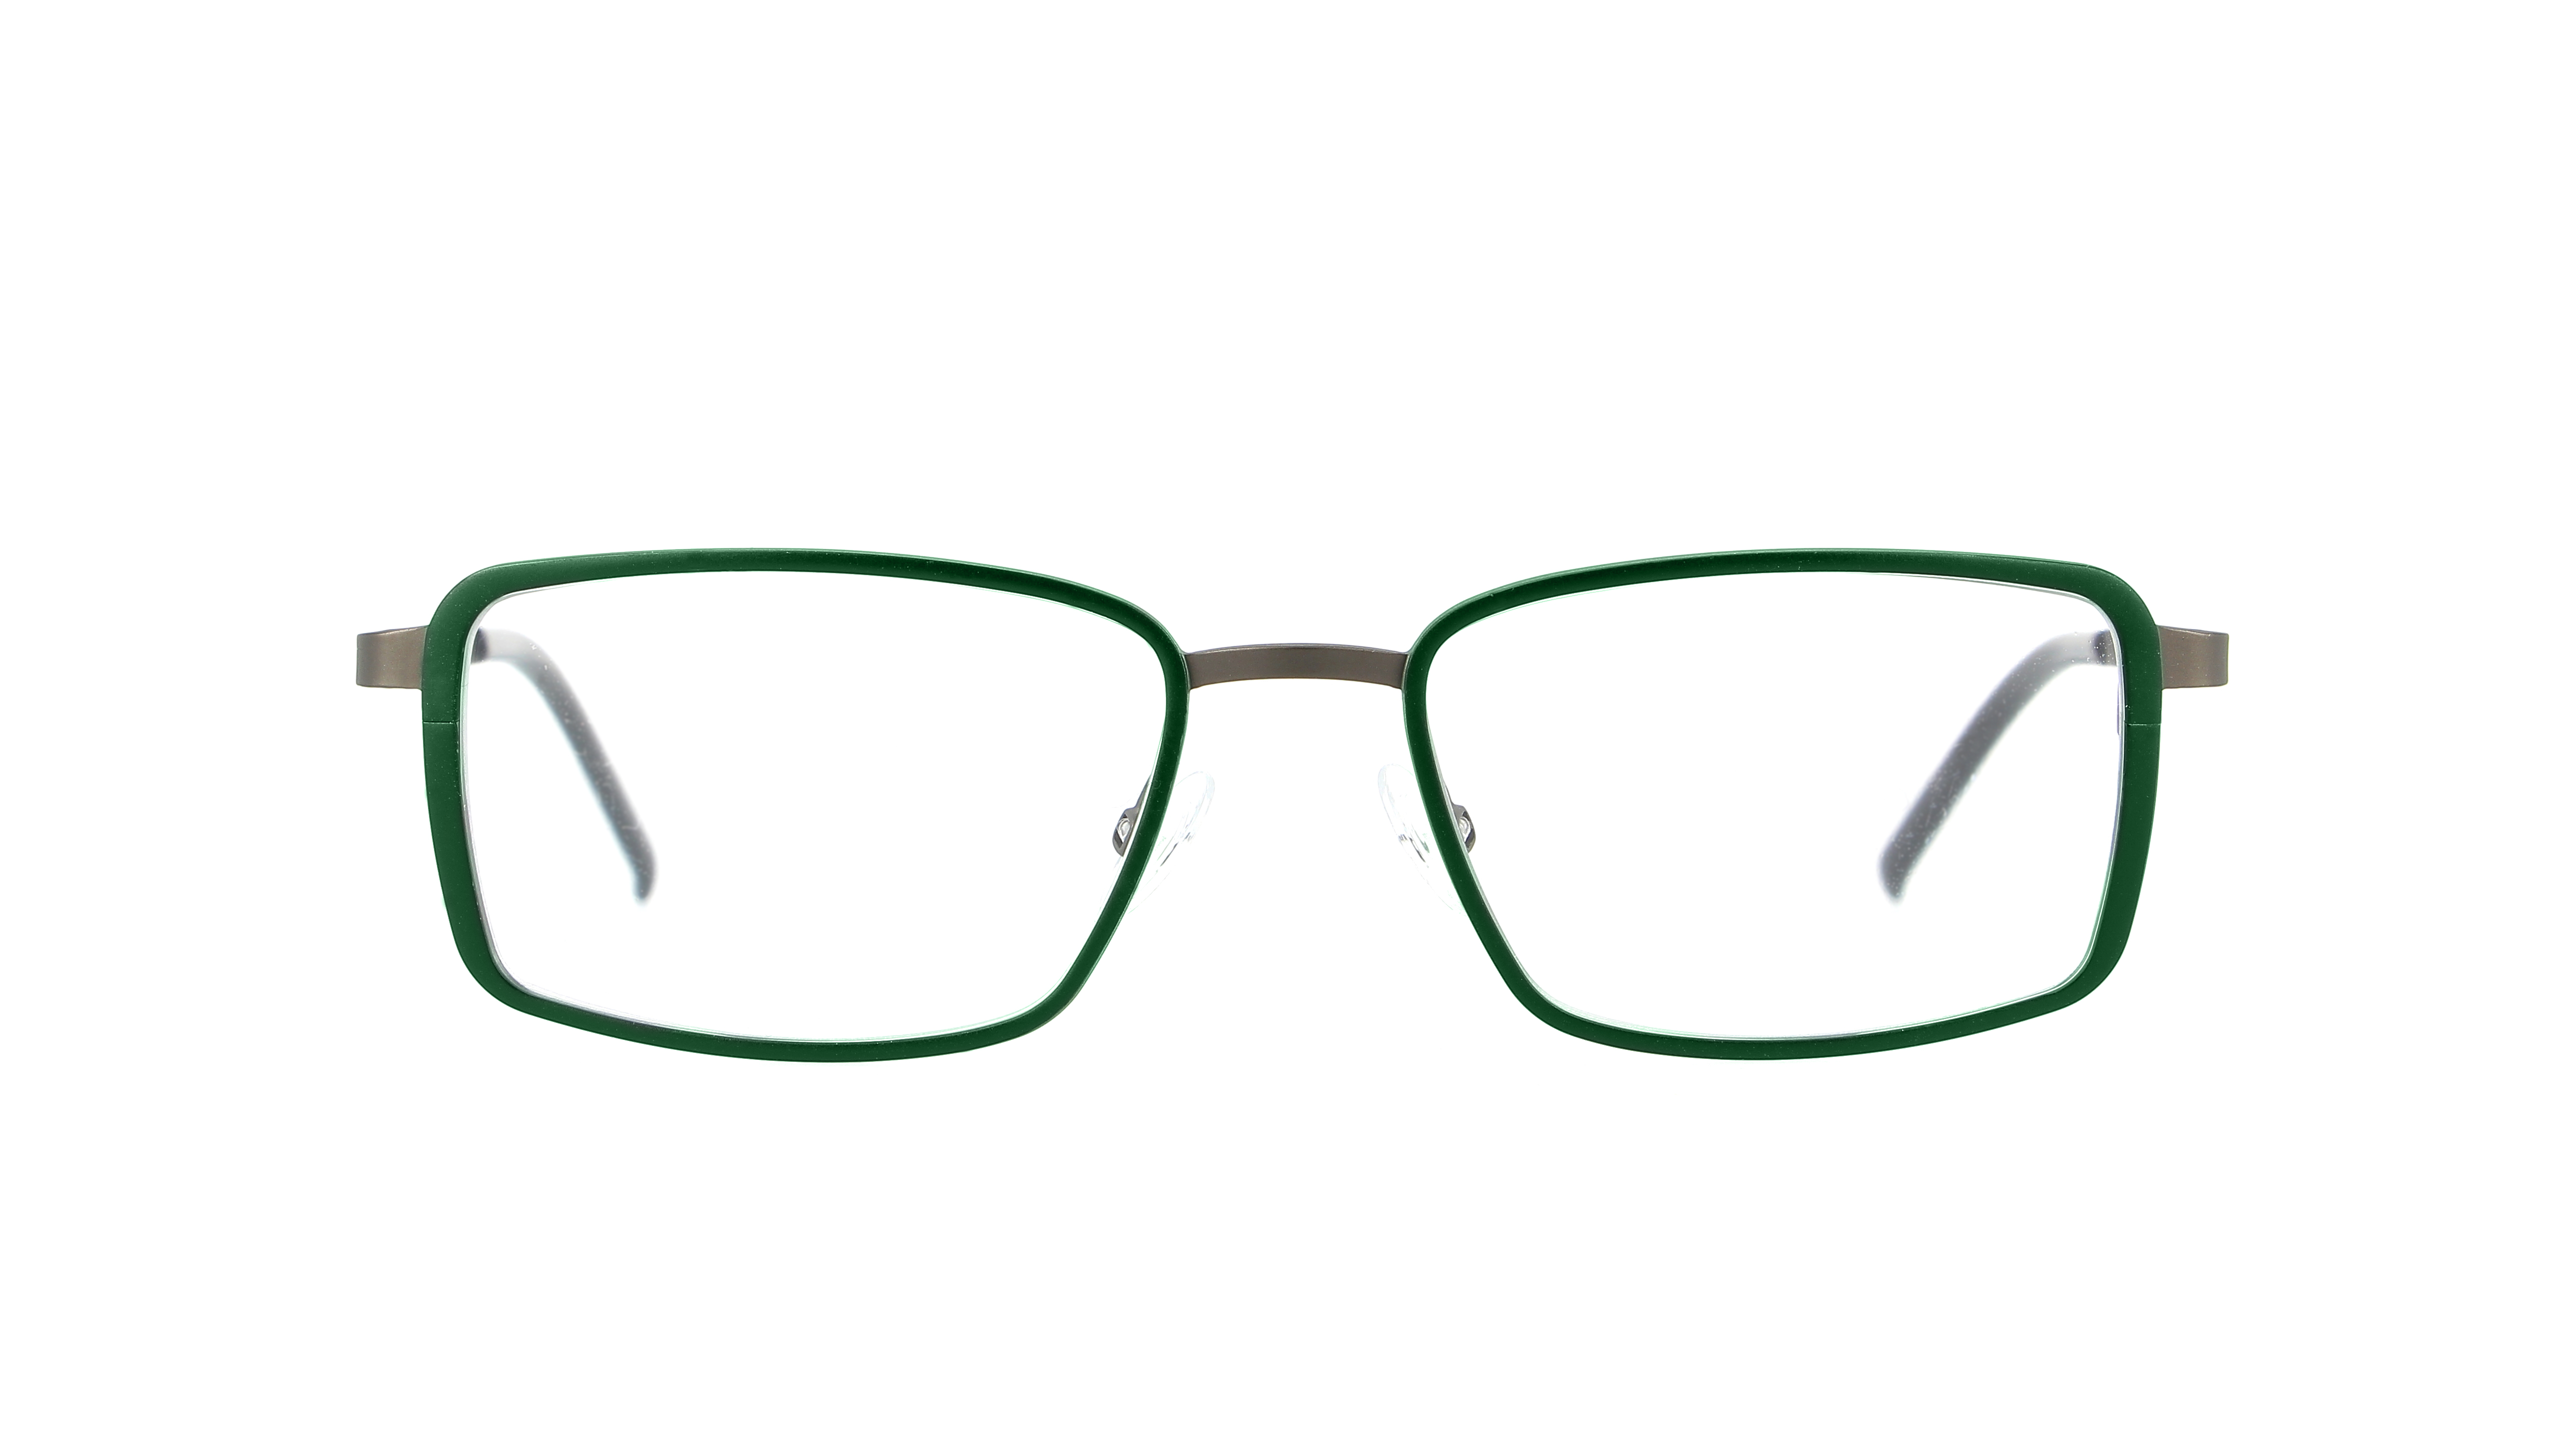 #VANNI Re-Master V4025 c219. Iconic shapes, evergreen colours. #madeinitalyforsure